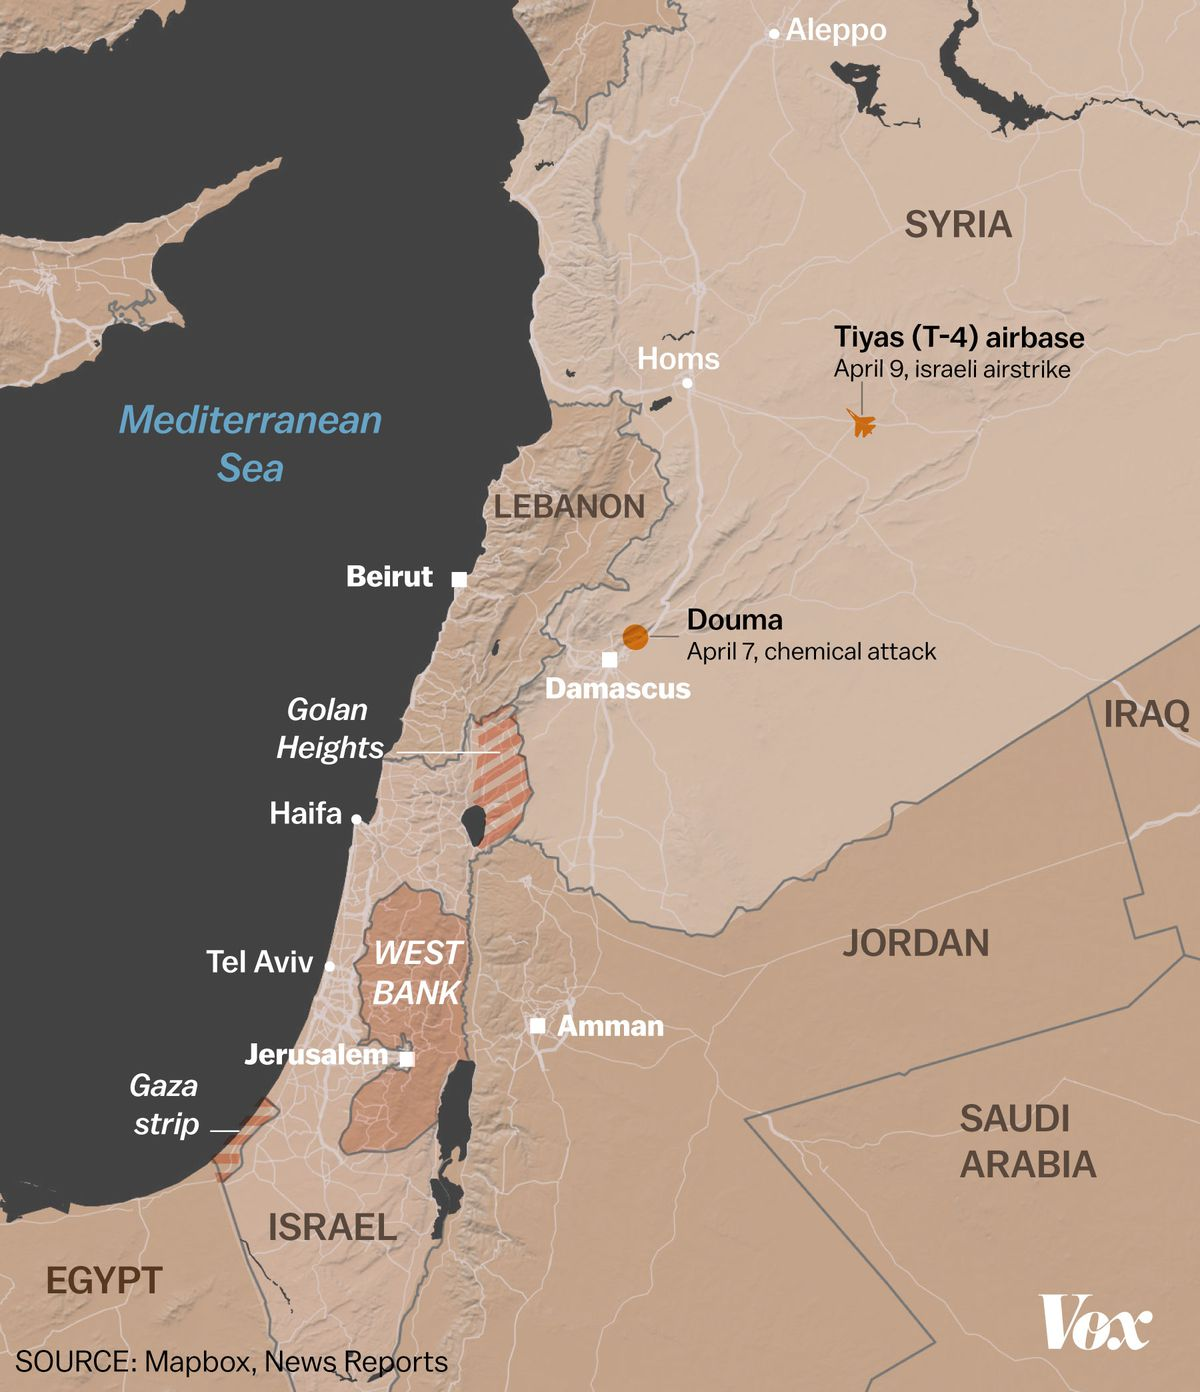 Syria could spark a full-on war between Israel and Iran - Vox